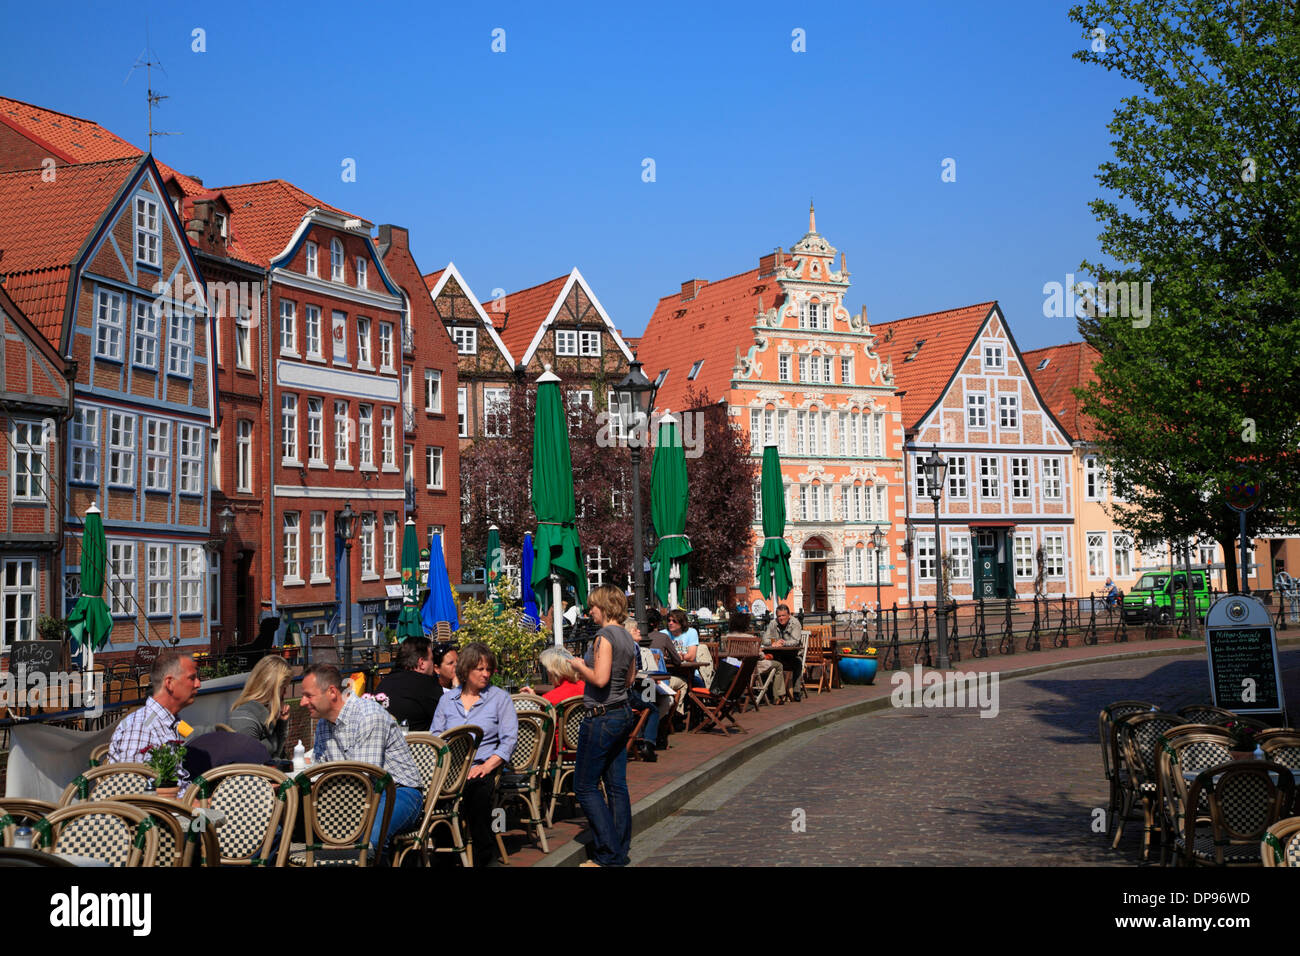 pavement cafe old harbor in stade altes land area lower saxony stock photo 65356521 alamy. Black Bedroom Furniture Sets. Home Design Ideas